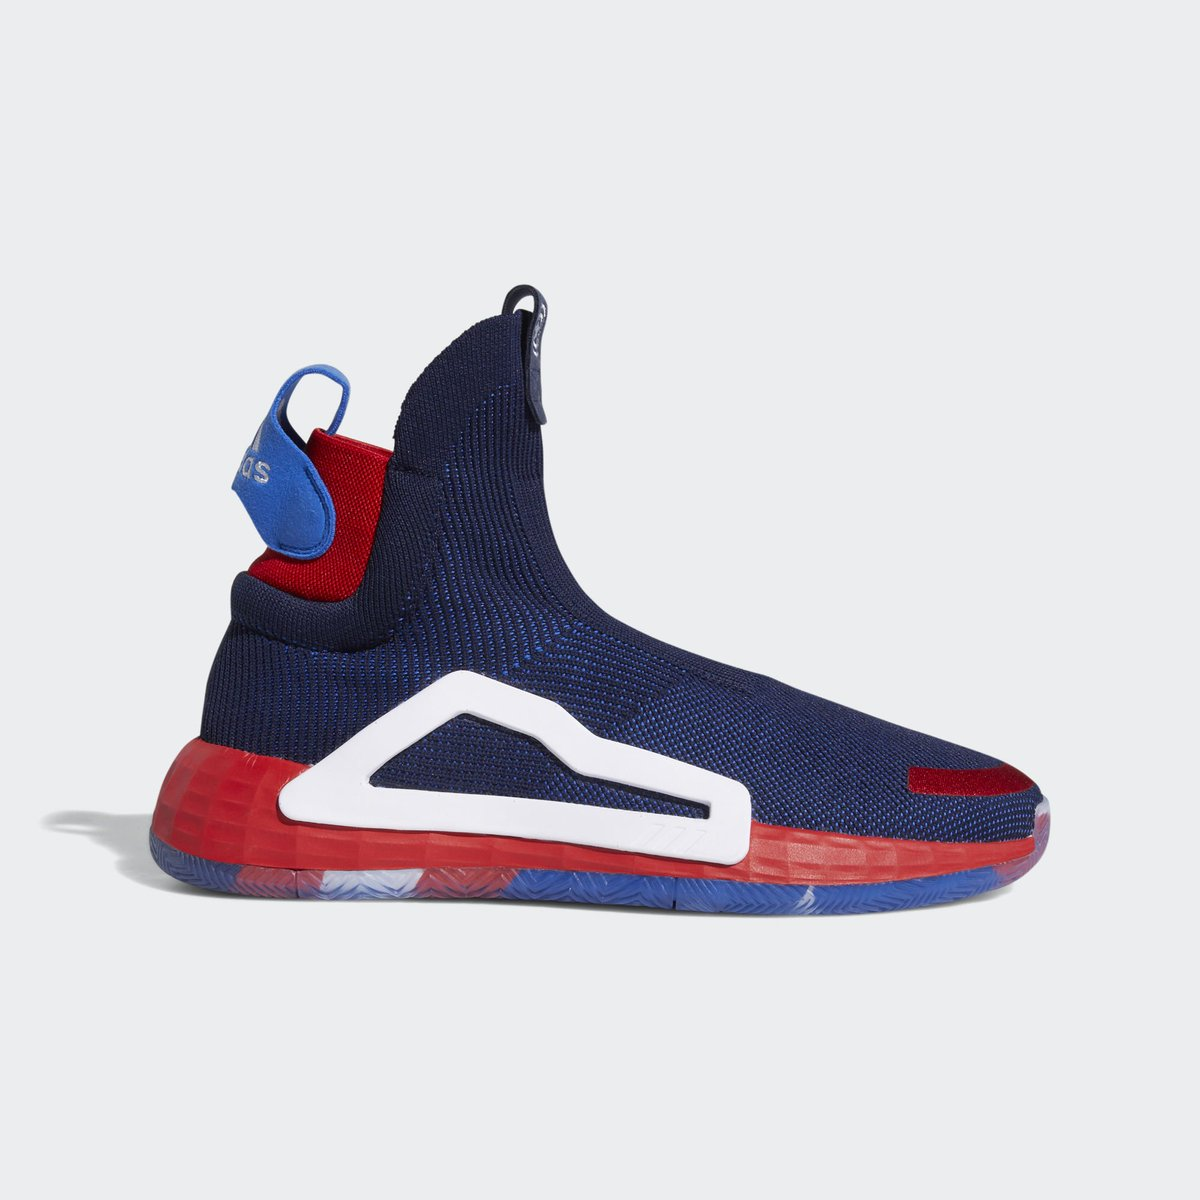 reputable site c9926 8aa13 ... releasing in the  Marvel x  adidasHoops Avengers Pack this Friday, April  26. Sign up for email updates direct from adidas  —  https   bit.ly 2Dp9JdP  ...